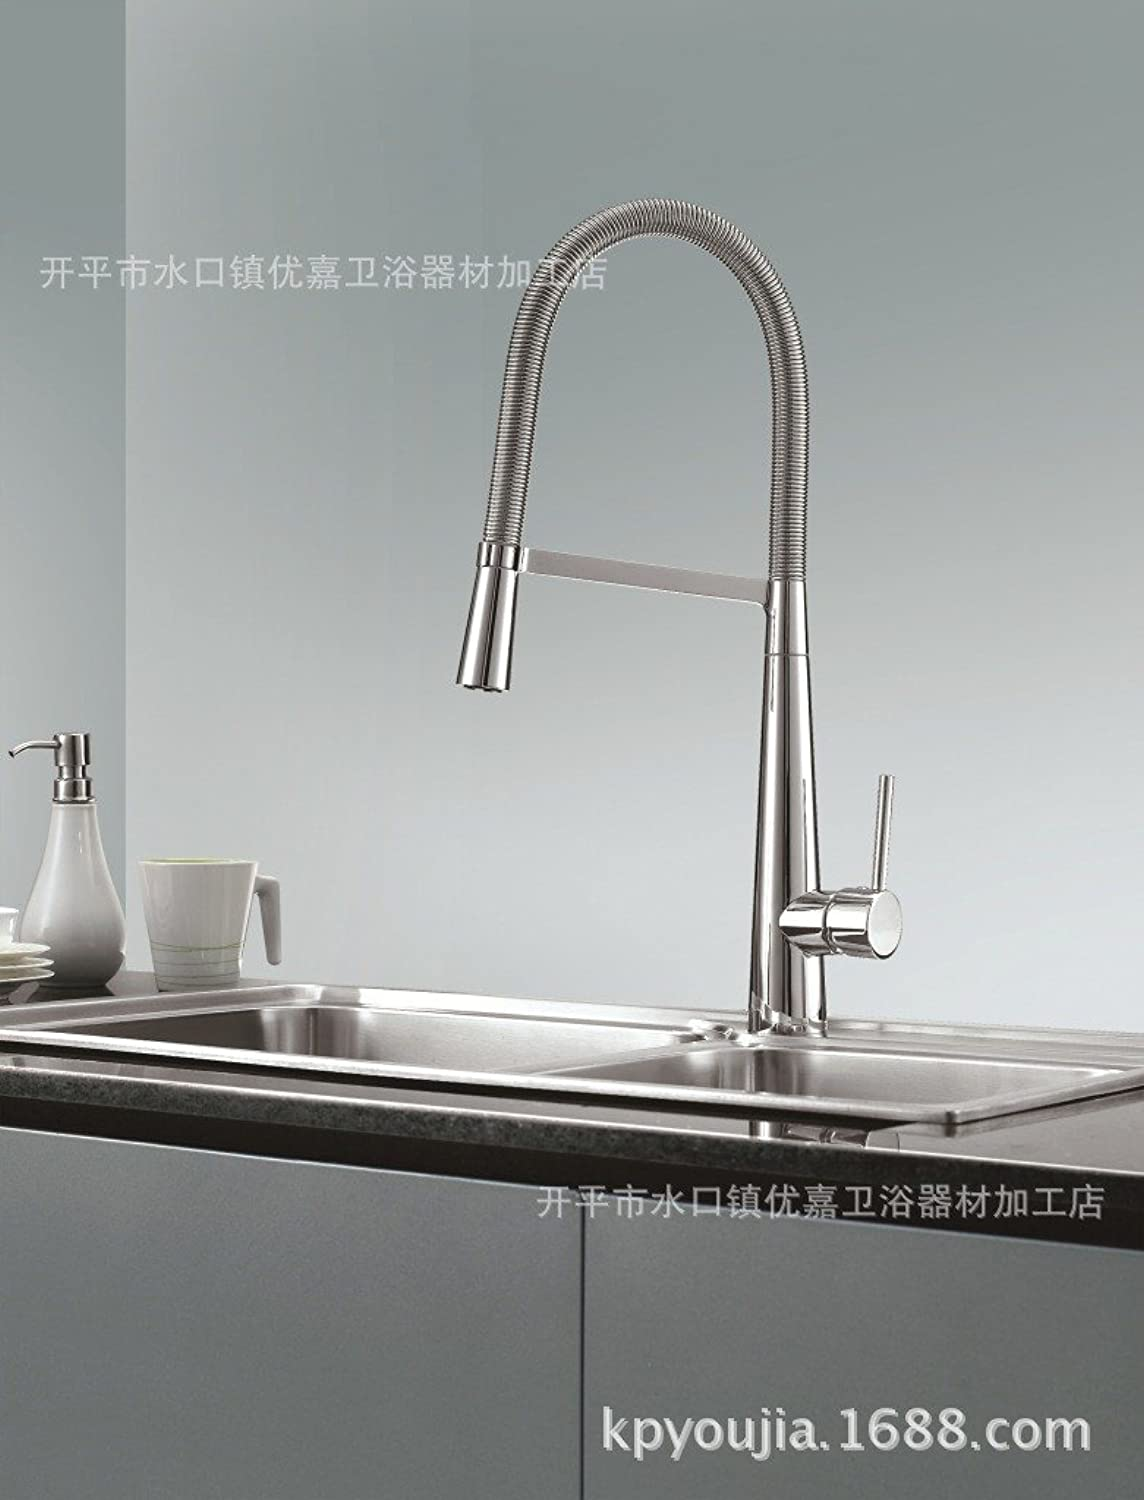 JIAHENGY Sink Mixer Faucet tap European style retro art Brushed NickelBasin Glass Spout WaterfallFaucet Toilet Kitchen bathroom